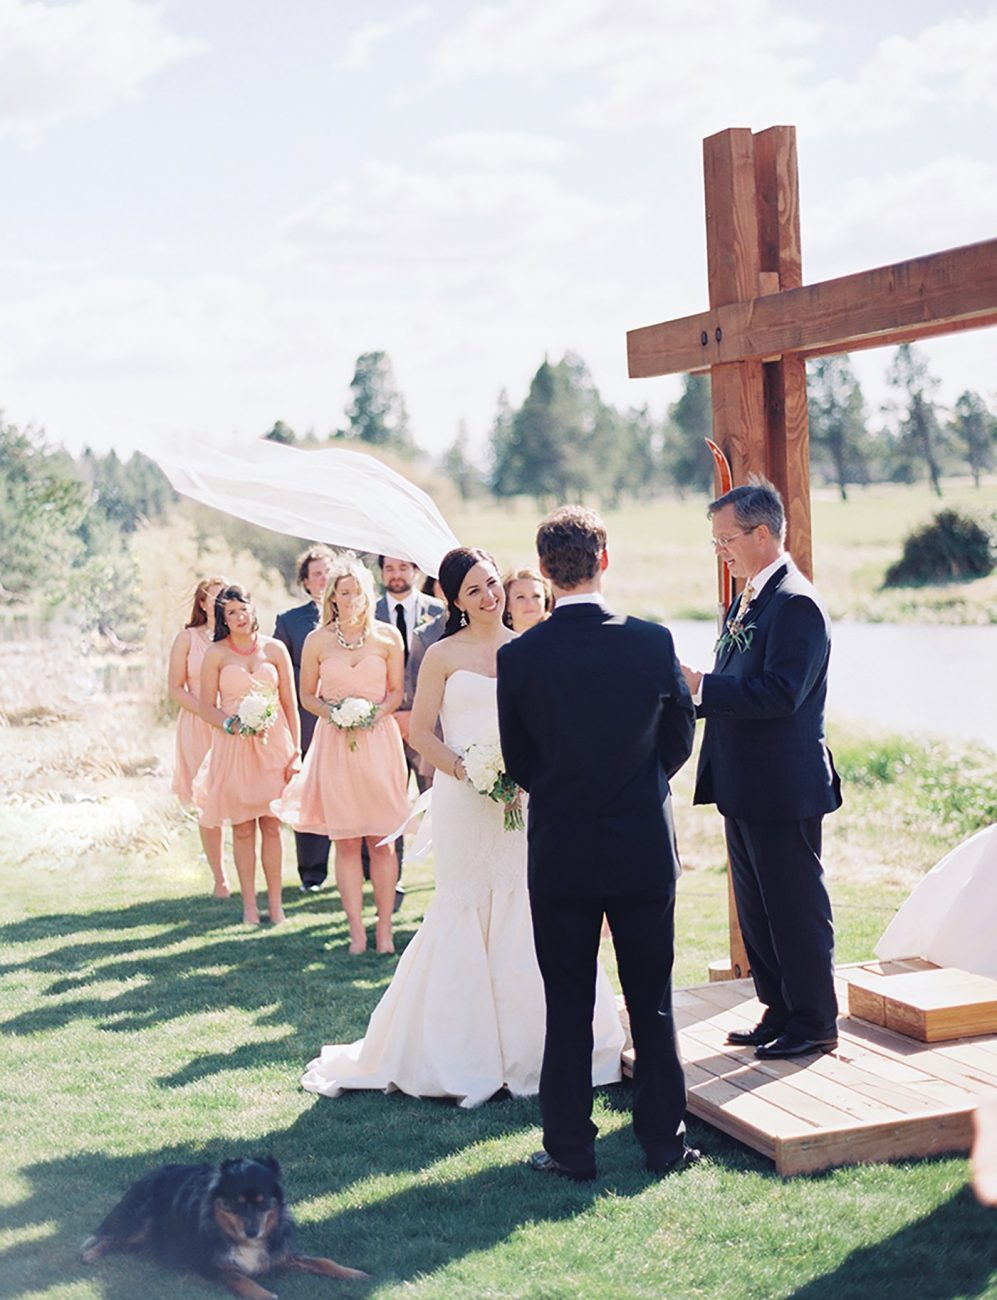 Wedding ceremony at Sunriver Resort